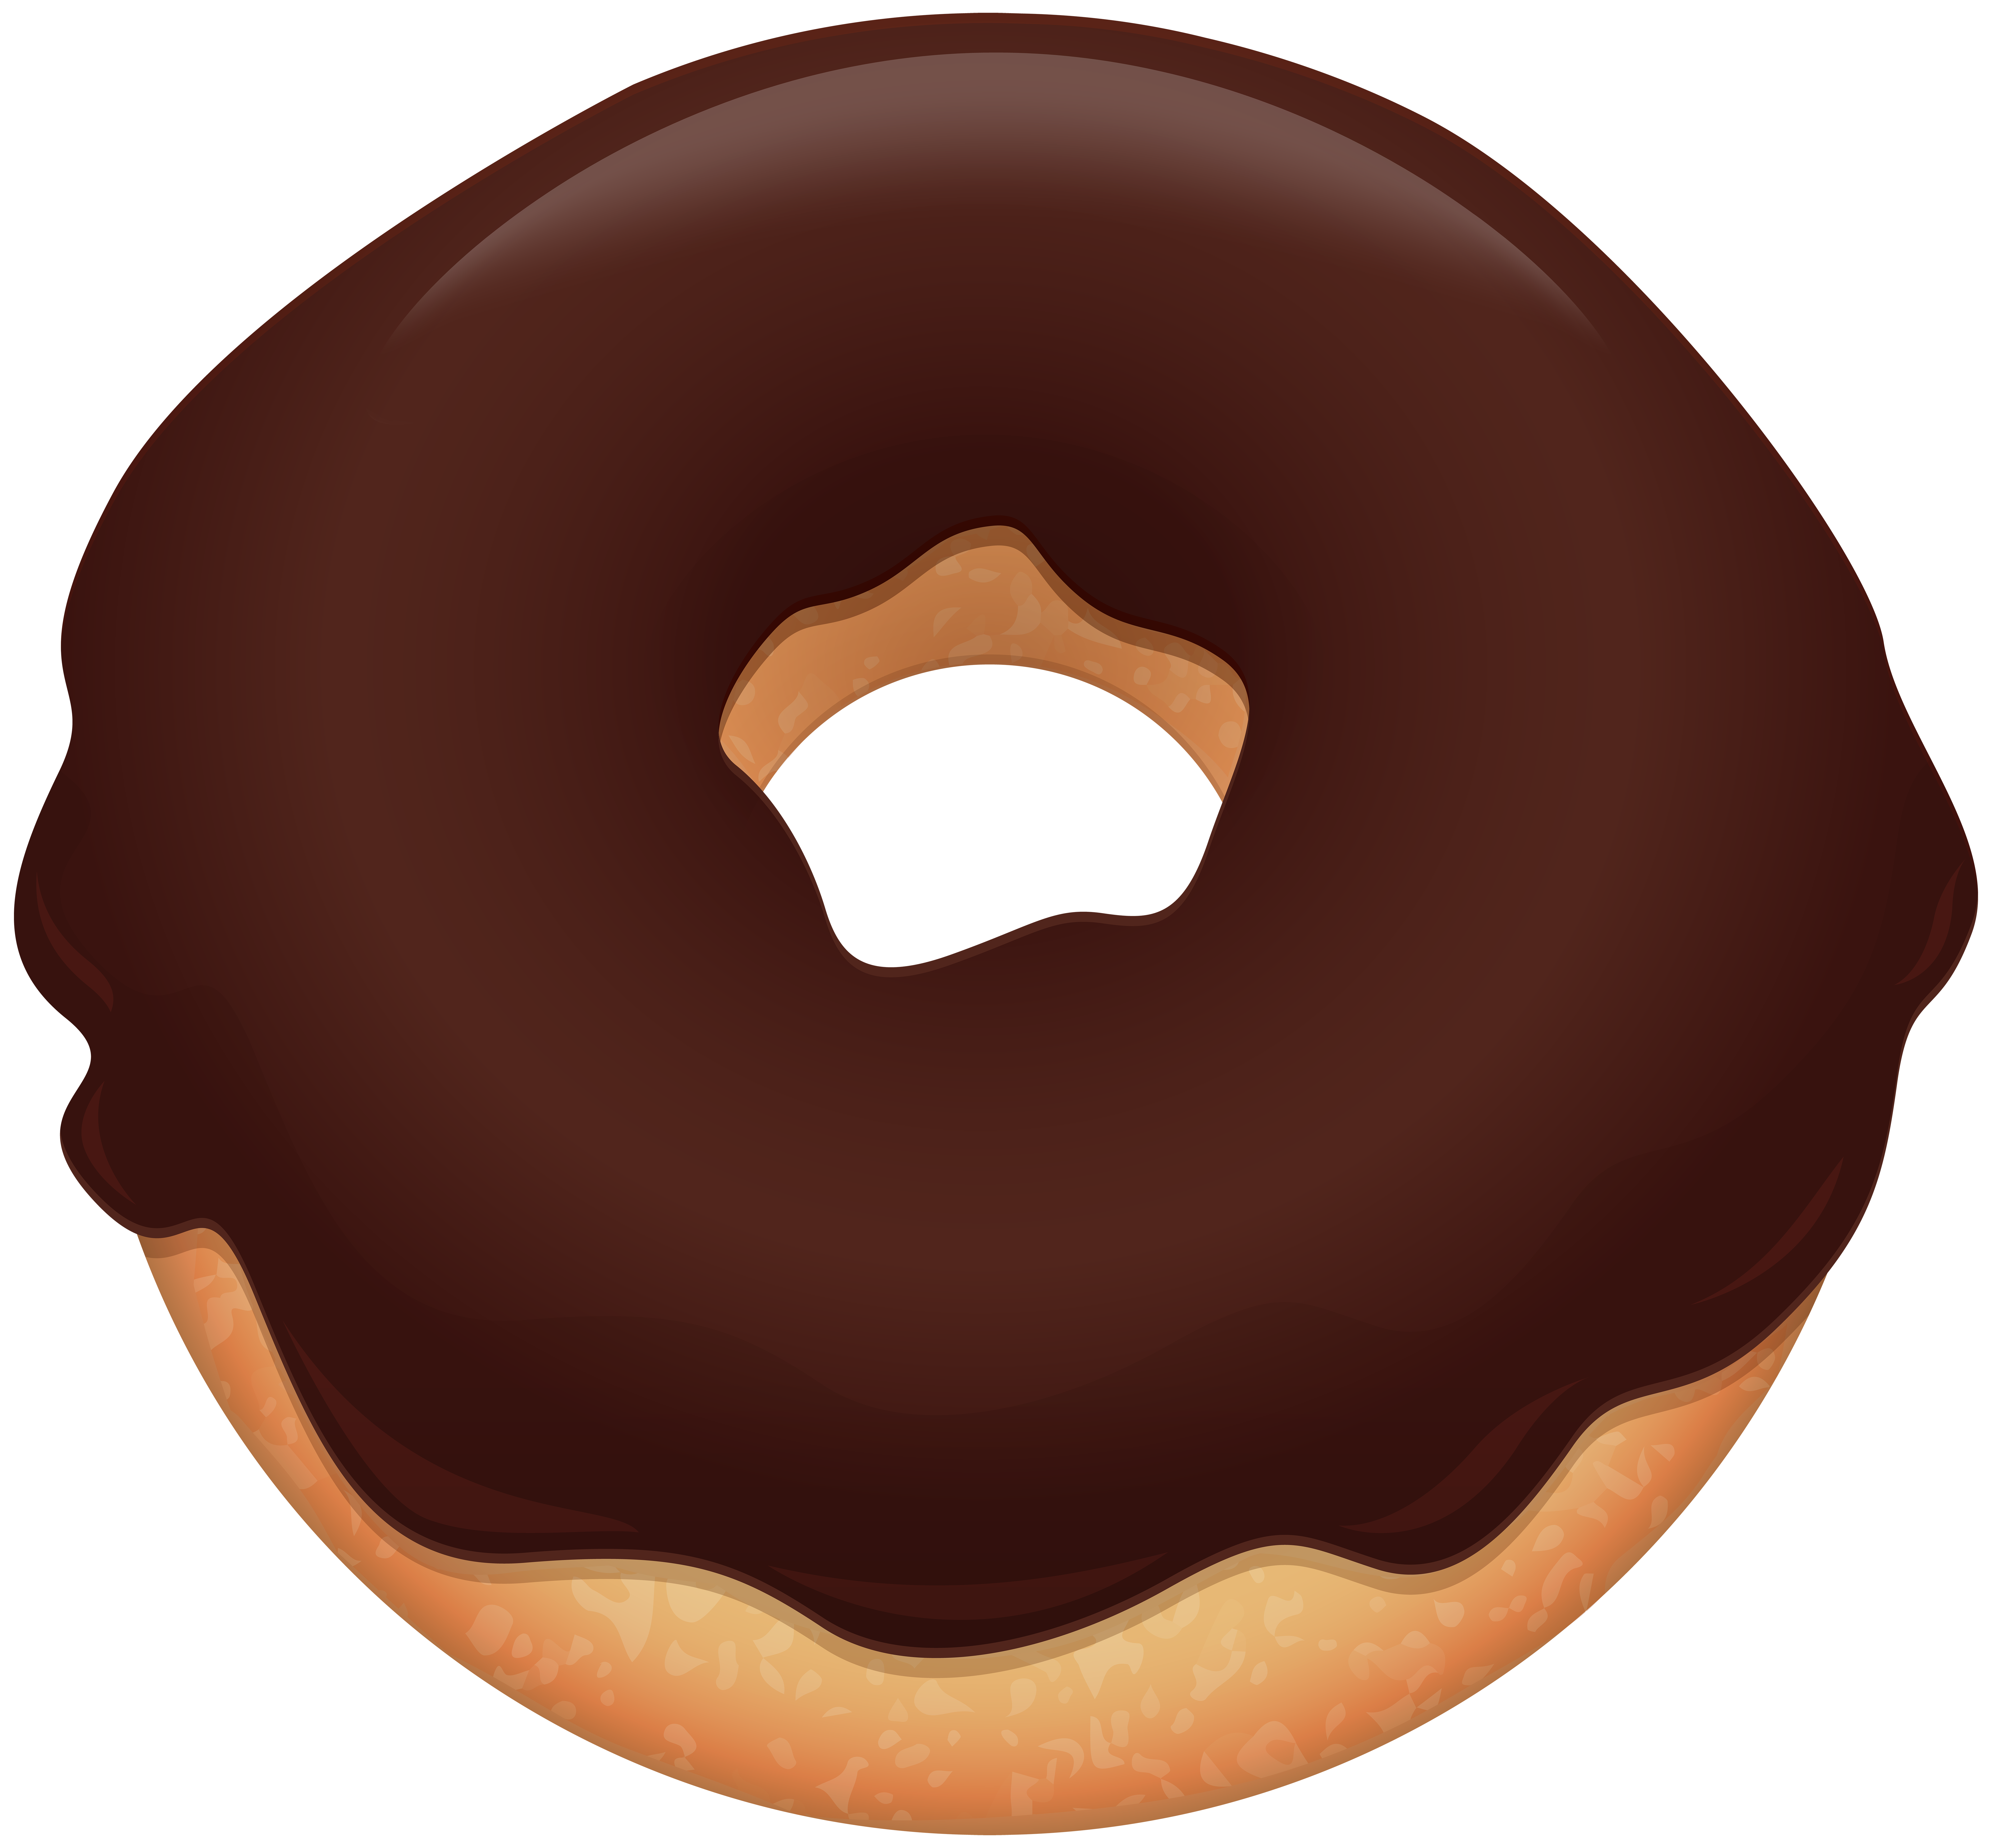 Png clip art image. Free clipart donut